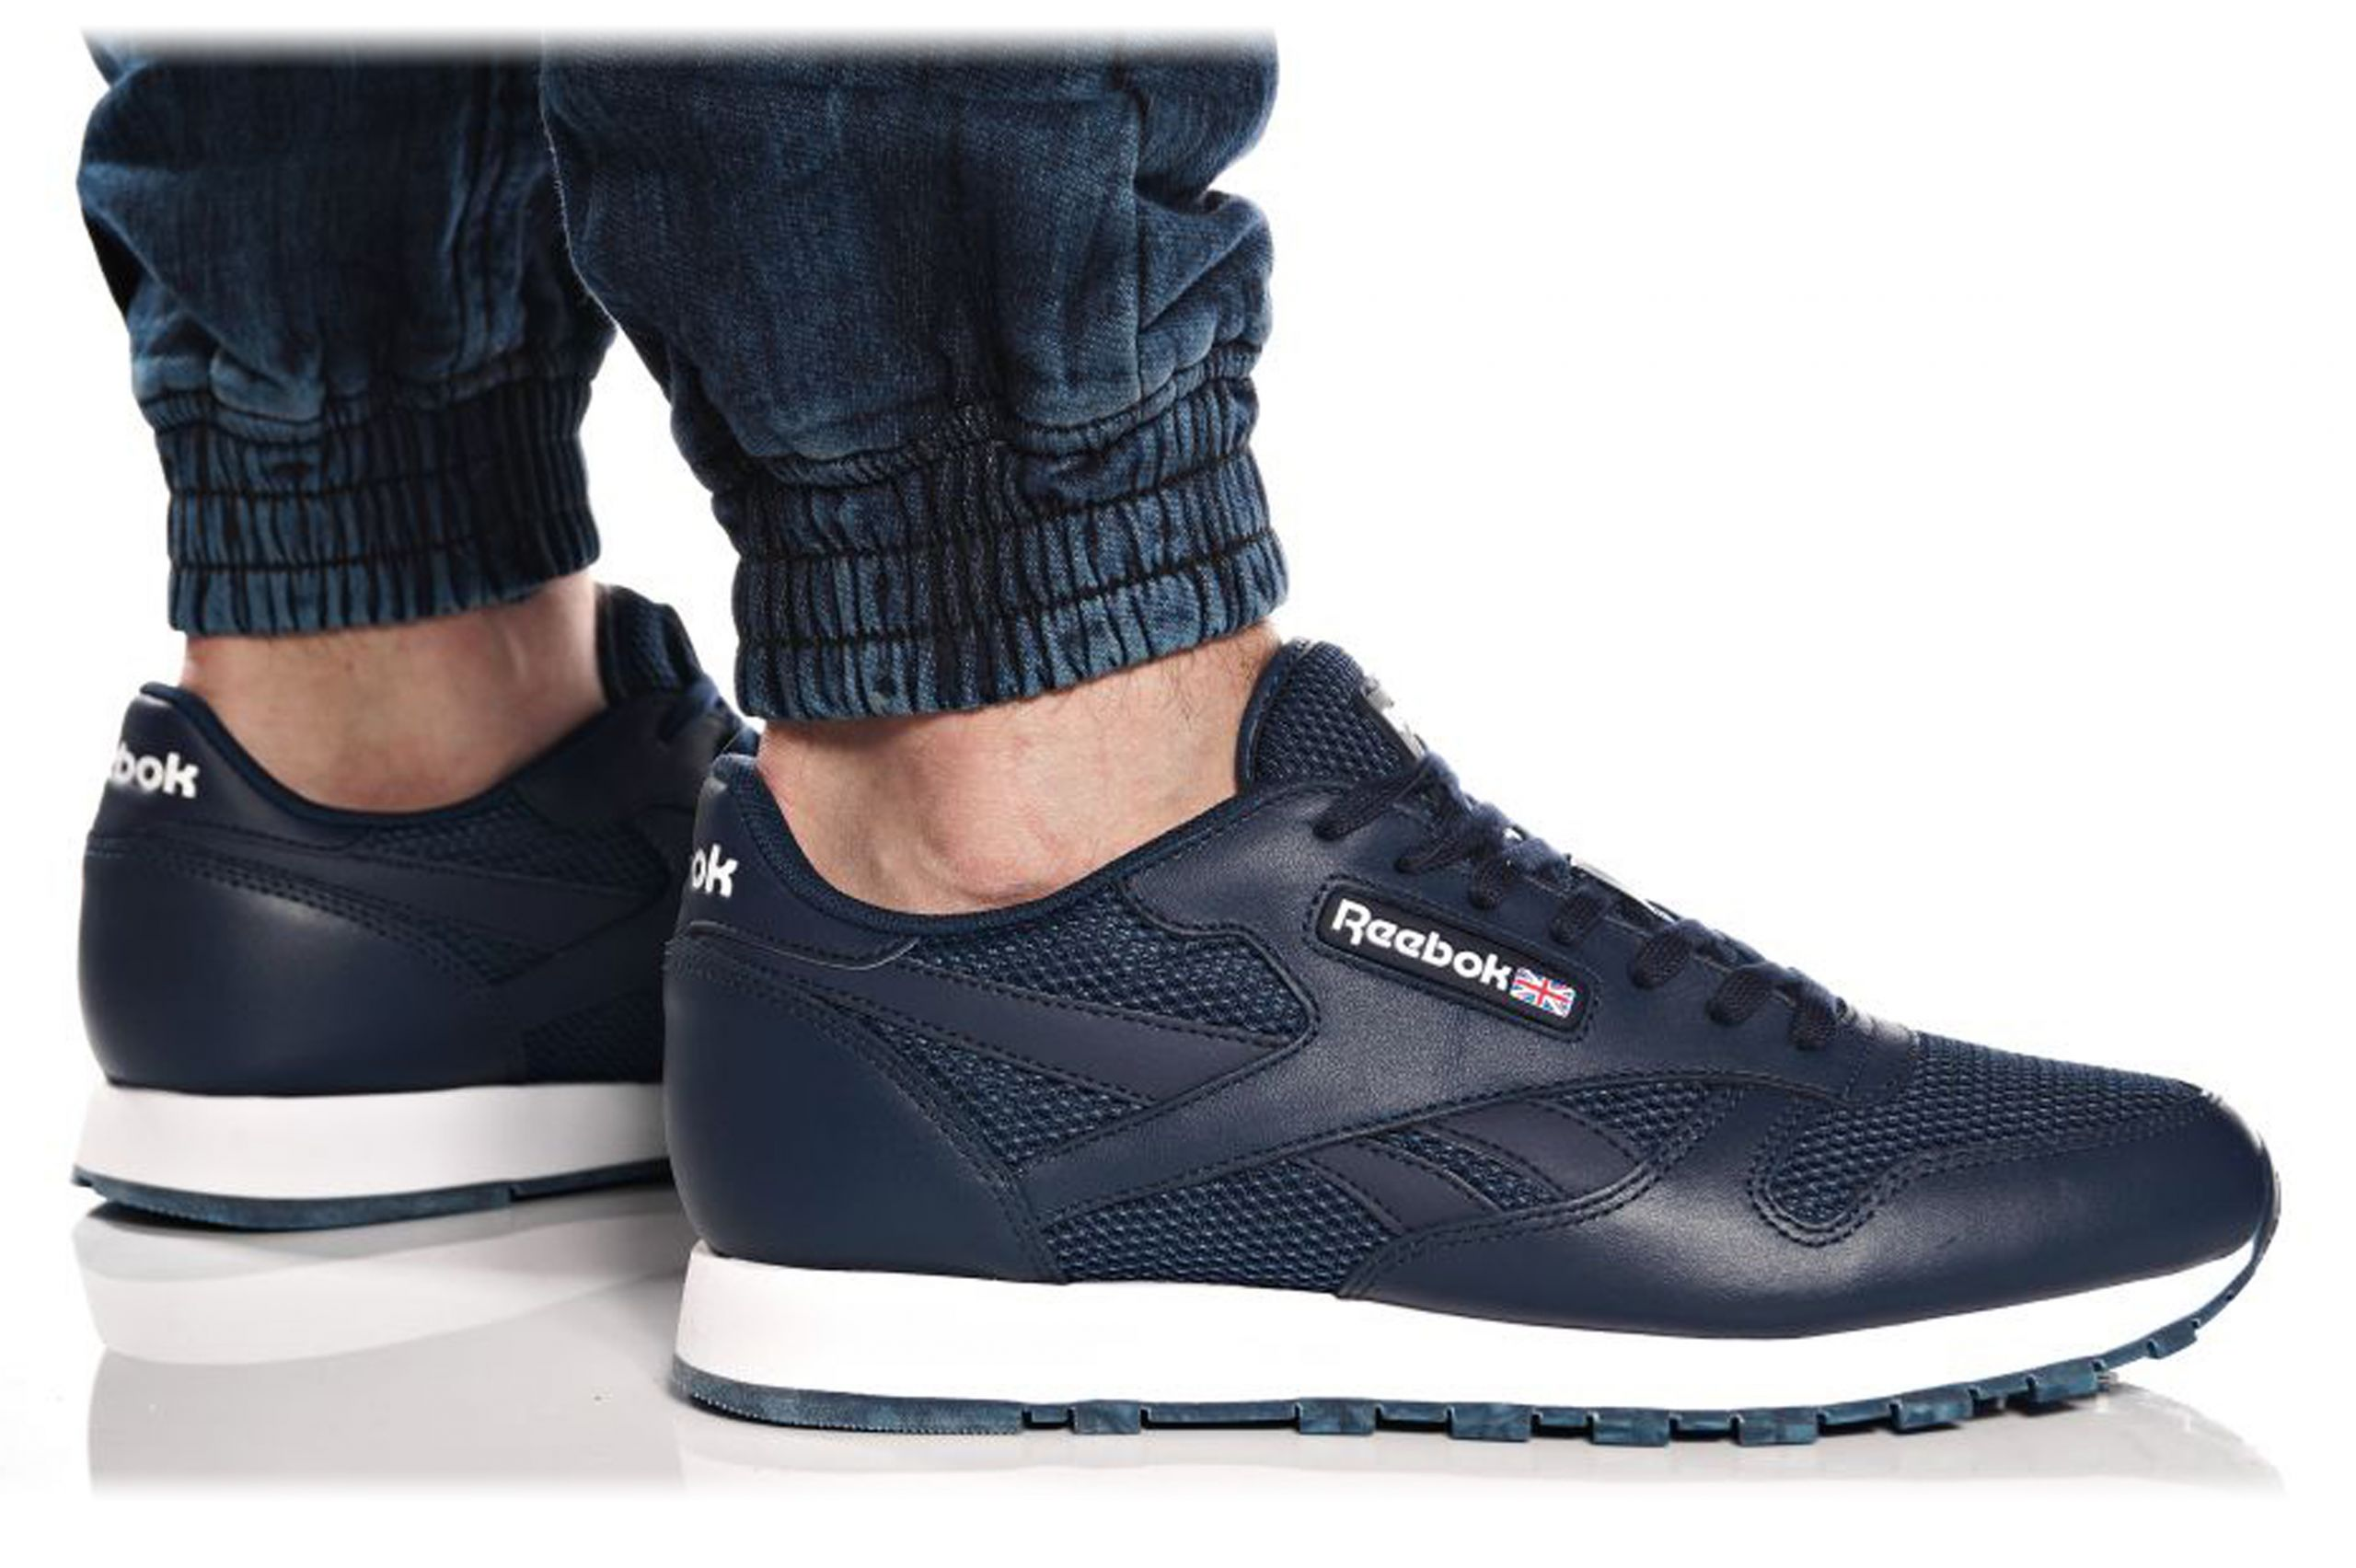 48cdc780 BUTY REEBOK CLASSIC CL LEATHER NM BD1651 GRANATOWE - 6788204112 ...